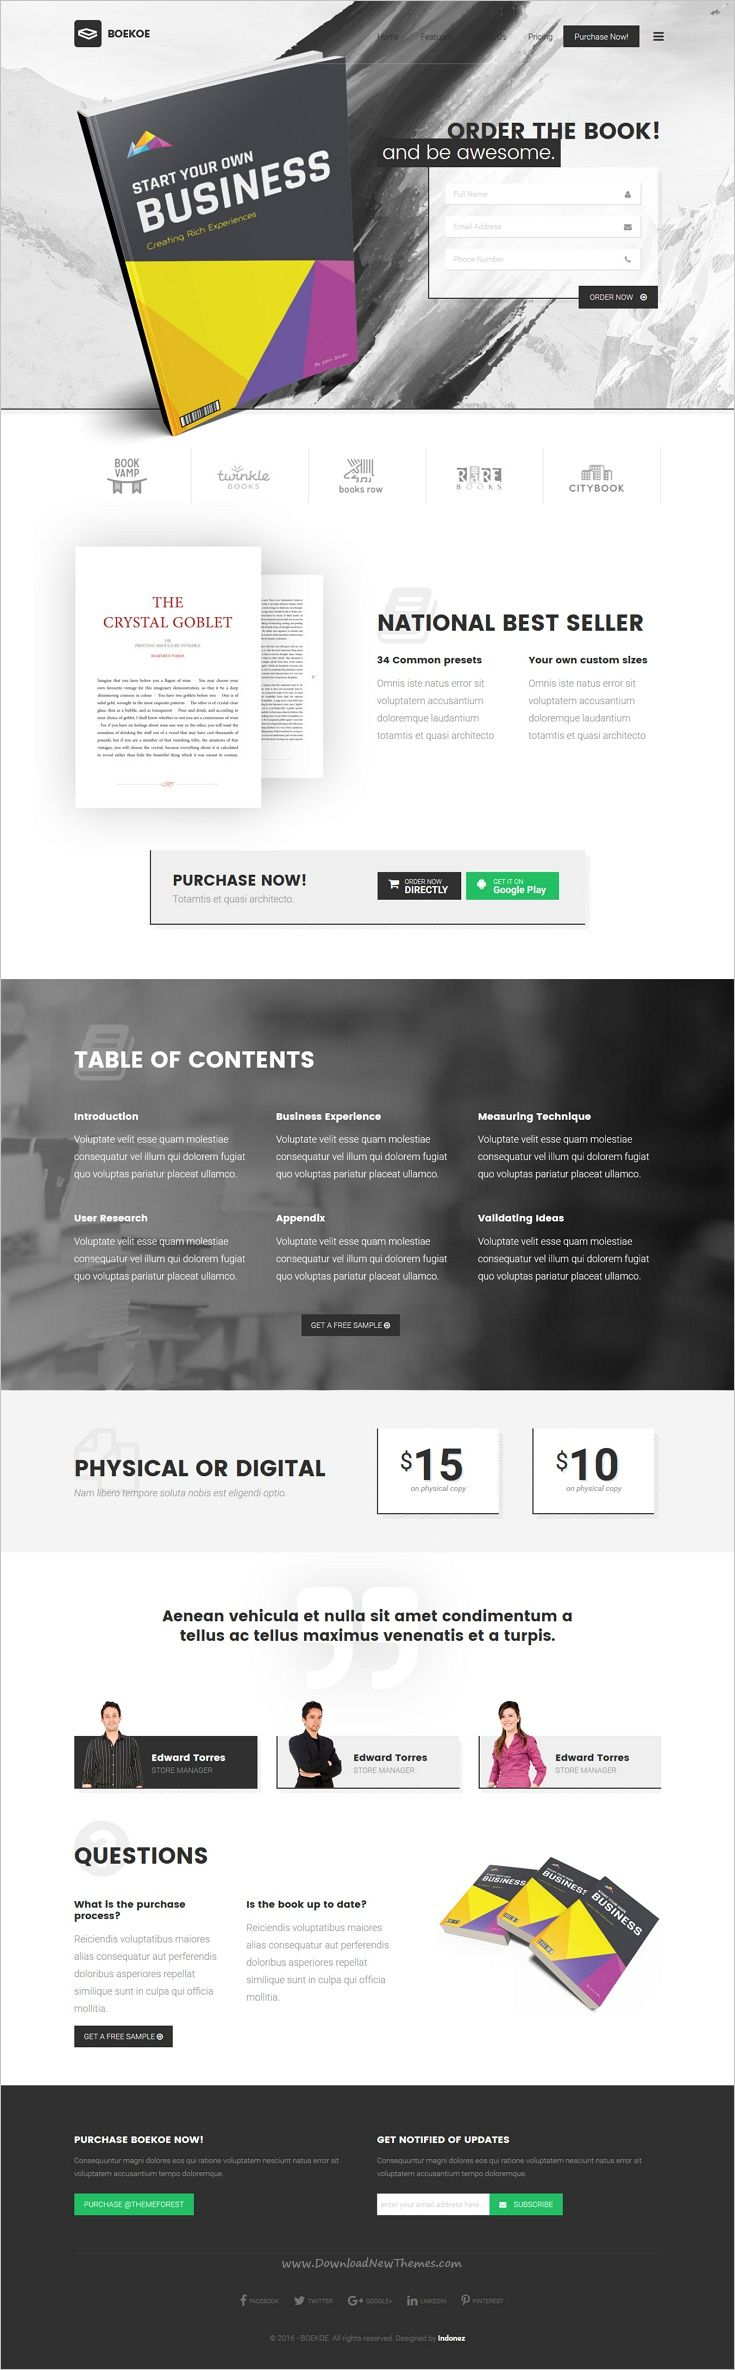 13 best APM Landing Pages images on Pinterest | Landing pages ...